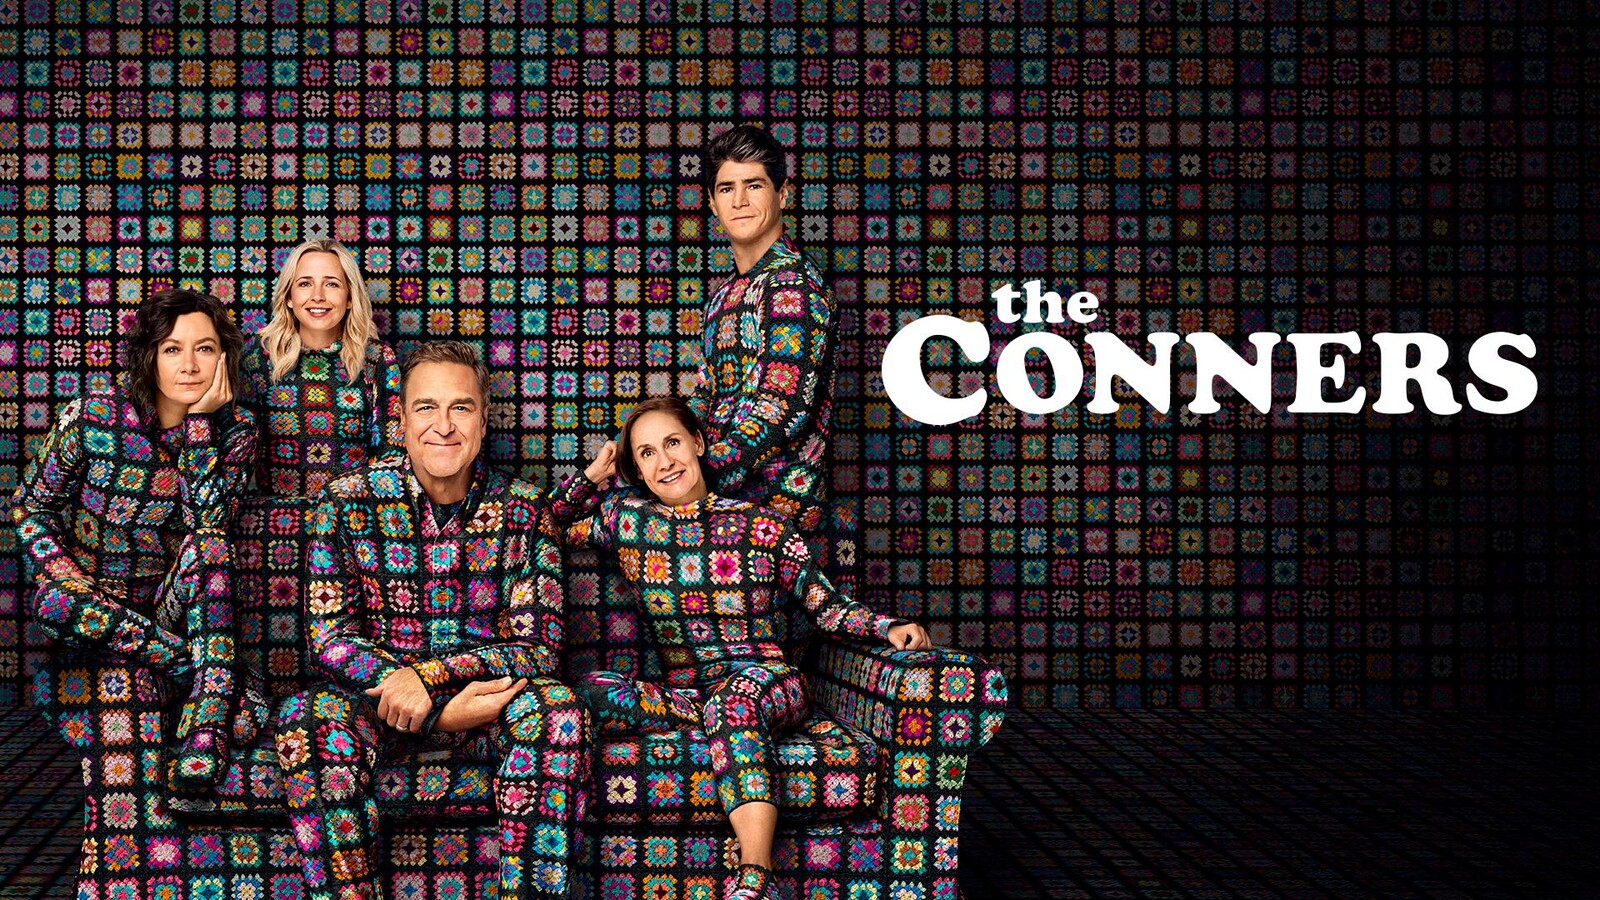 The Conners Season 4 Release Date, Cast and More: Everything We Know